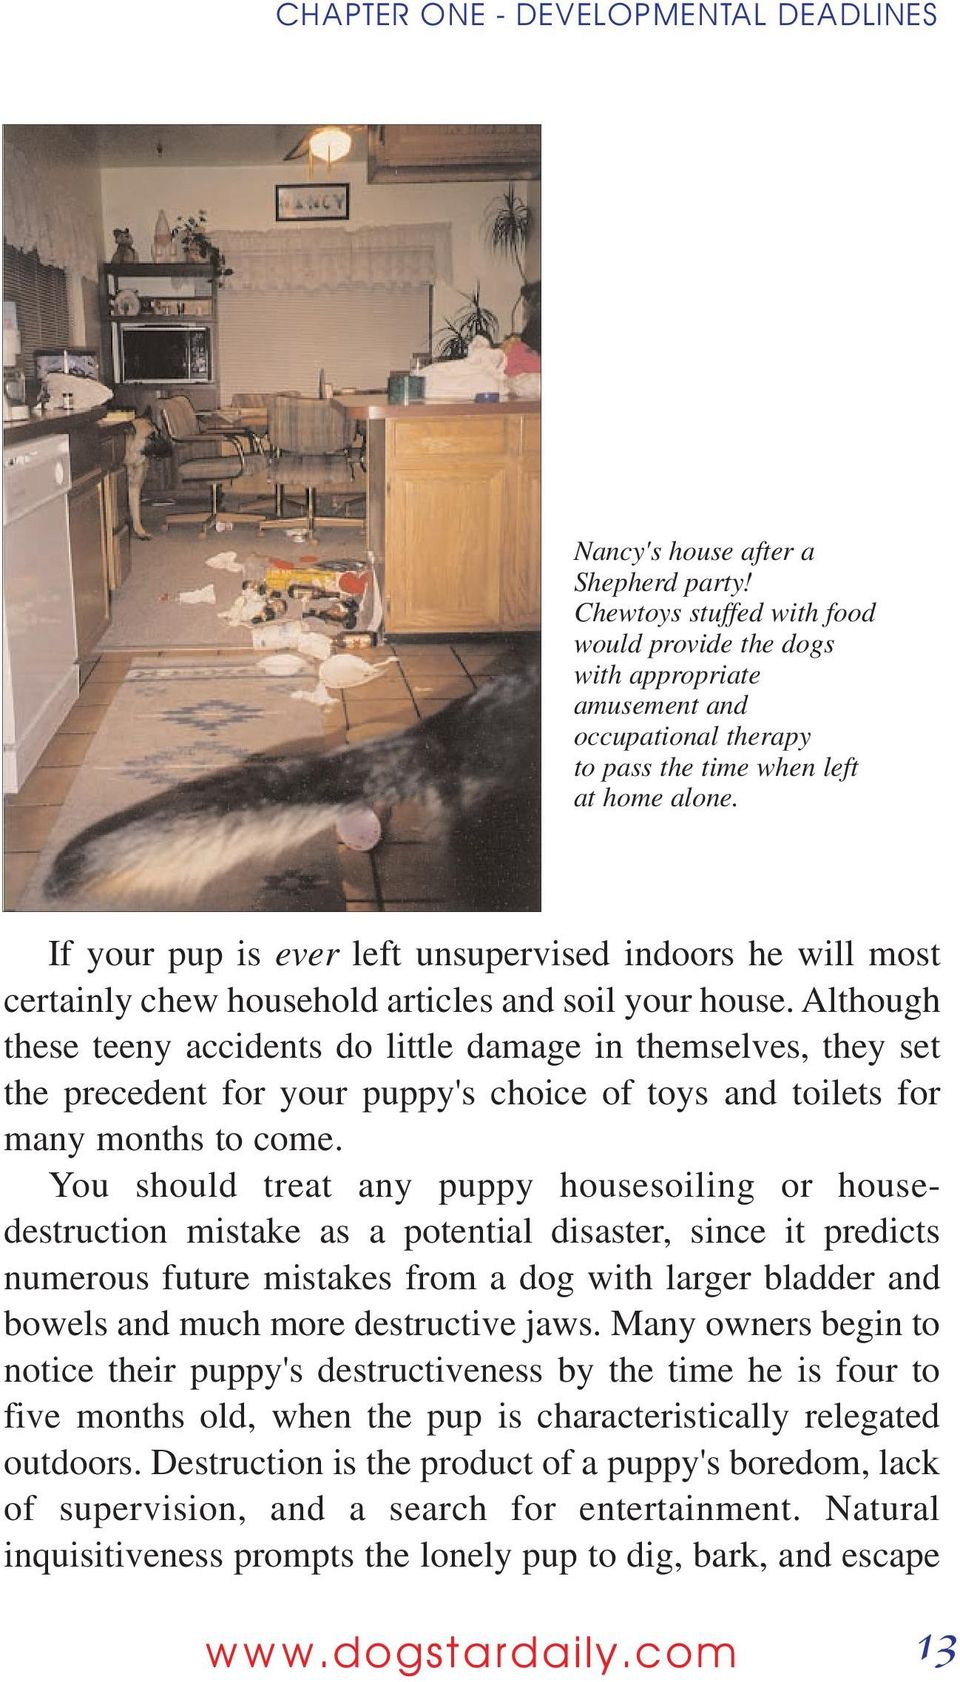 If your pup is ever left unsupervised indoors he will most certainly chew household articles and soil your house.